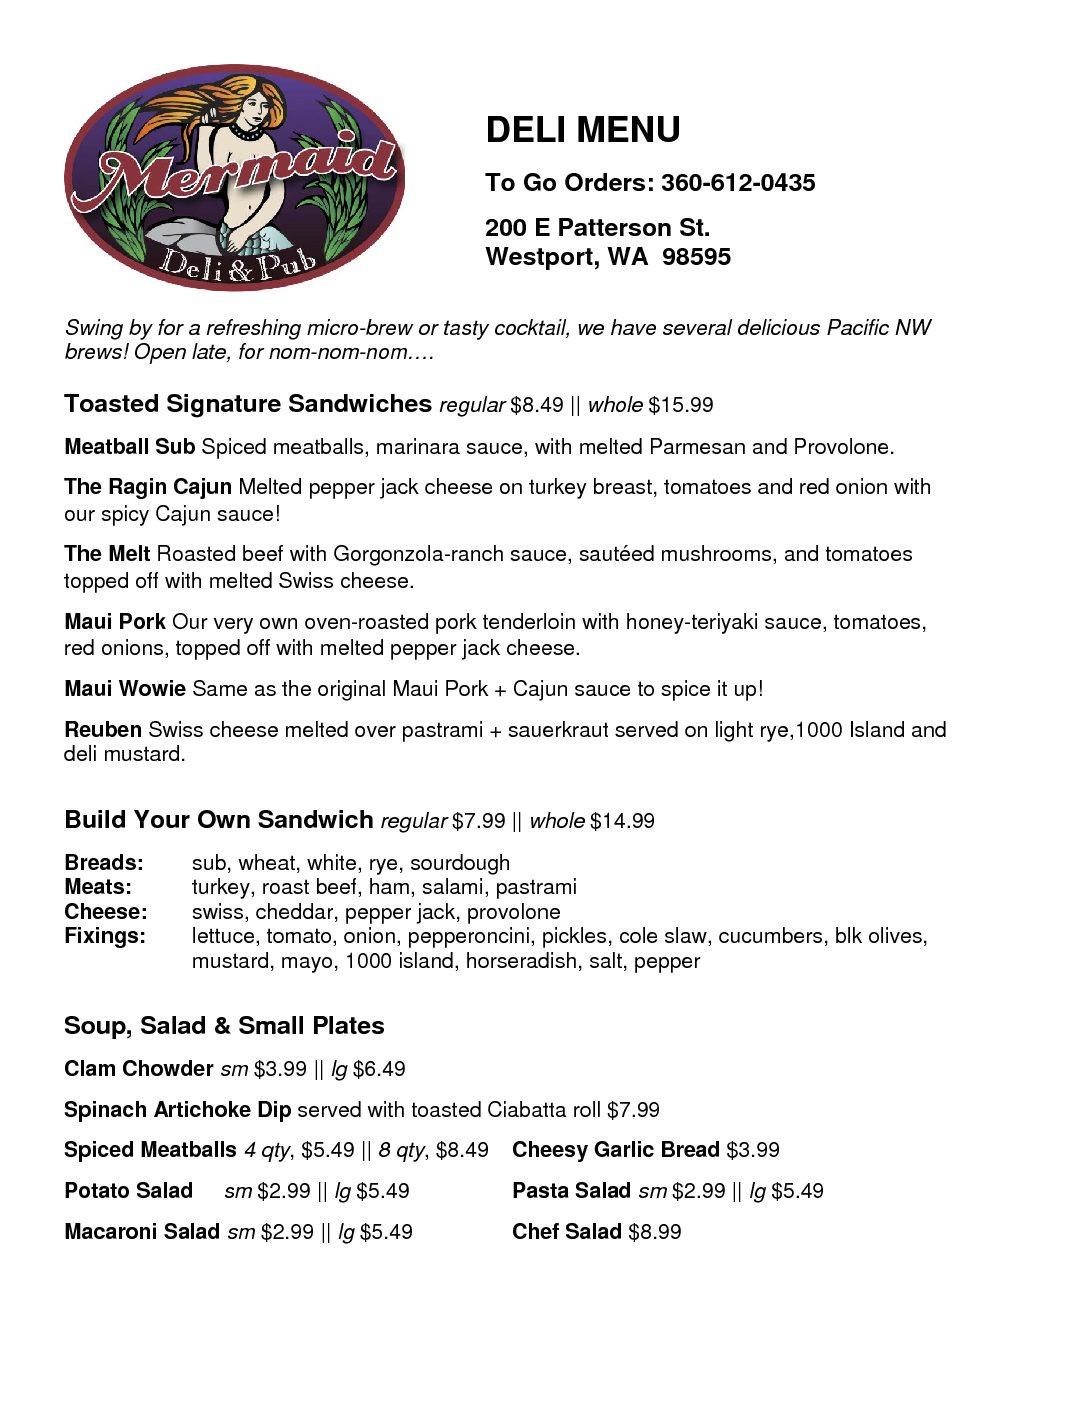 DELI MENU april2018_revised